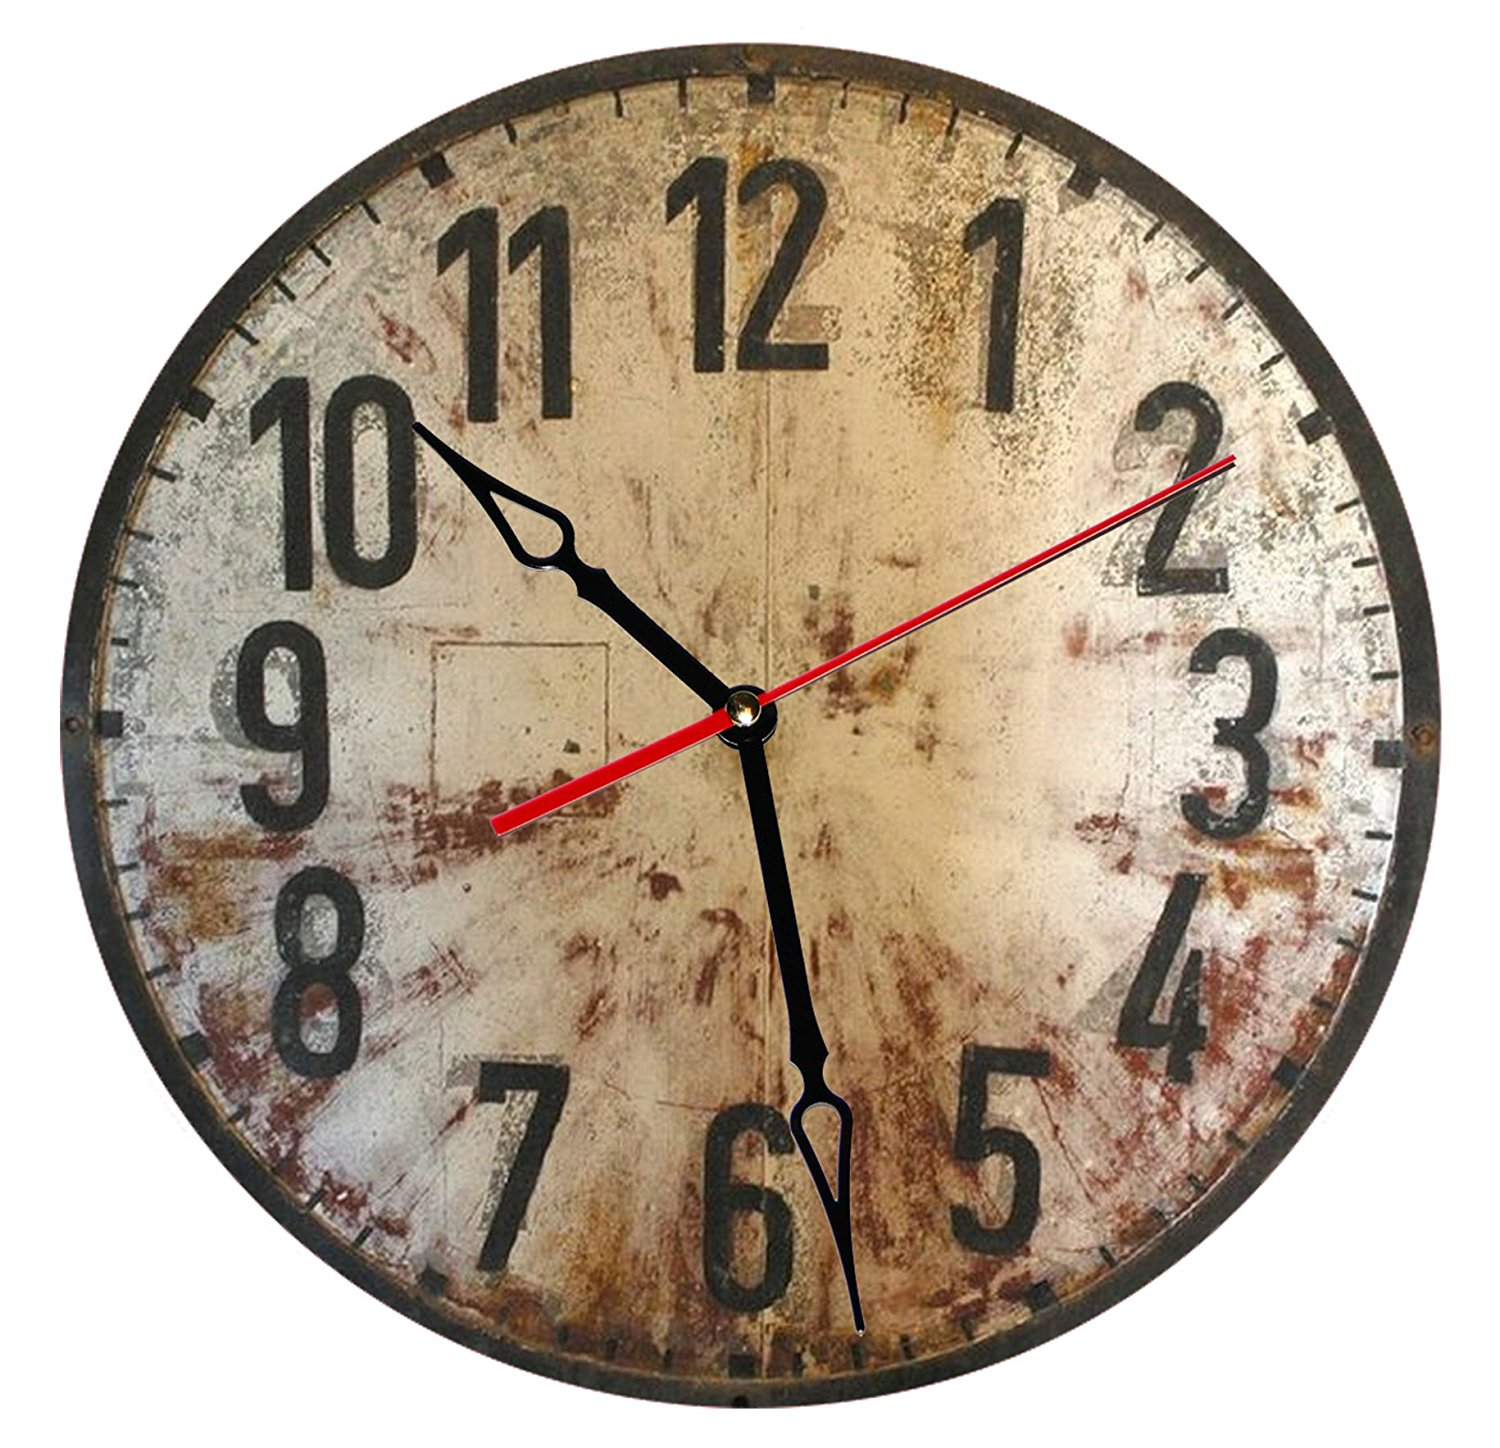 """SofiClock 12"""" Vintage Wall Clock With Arabic Numerals, Best Wooden Decor"""